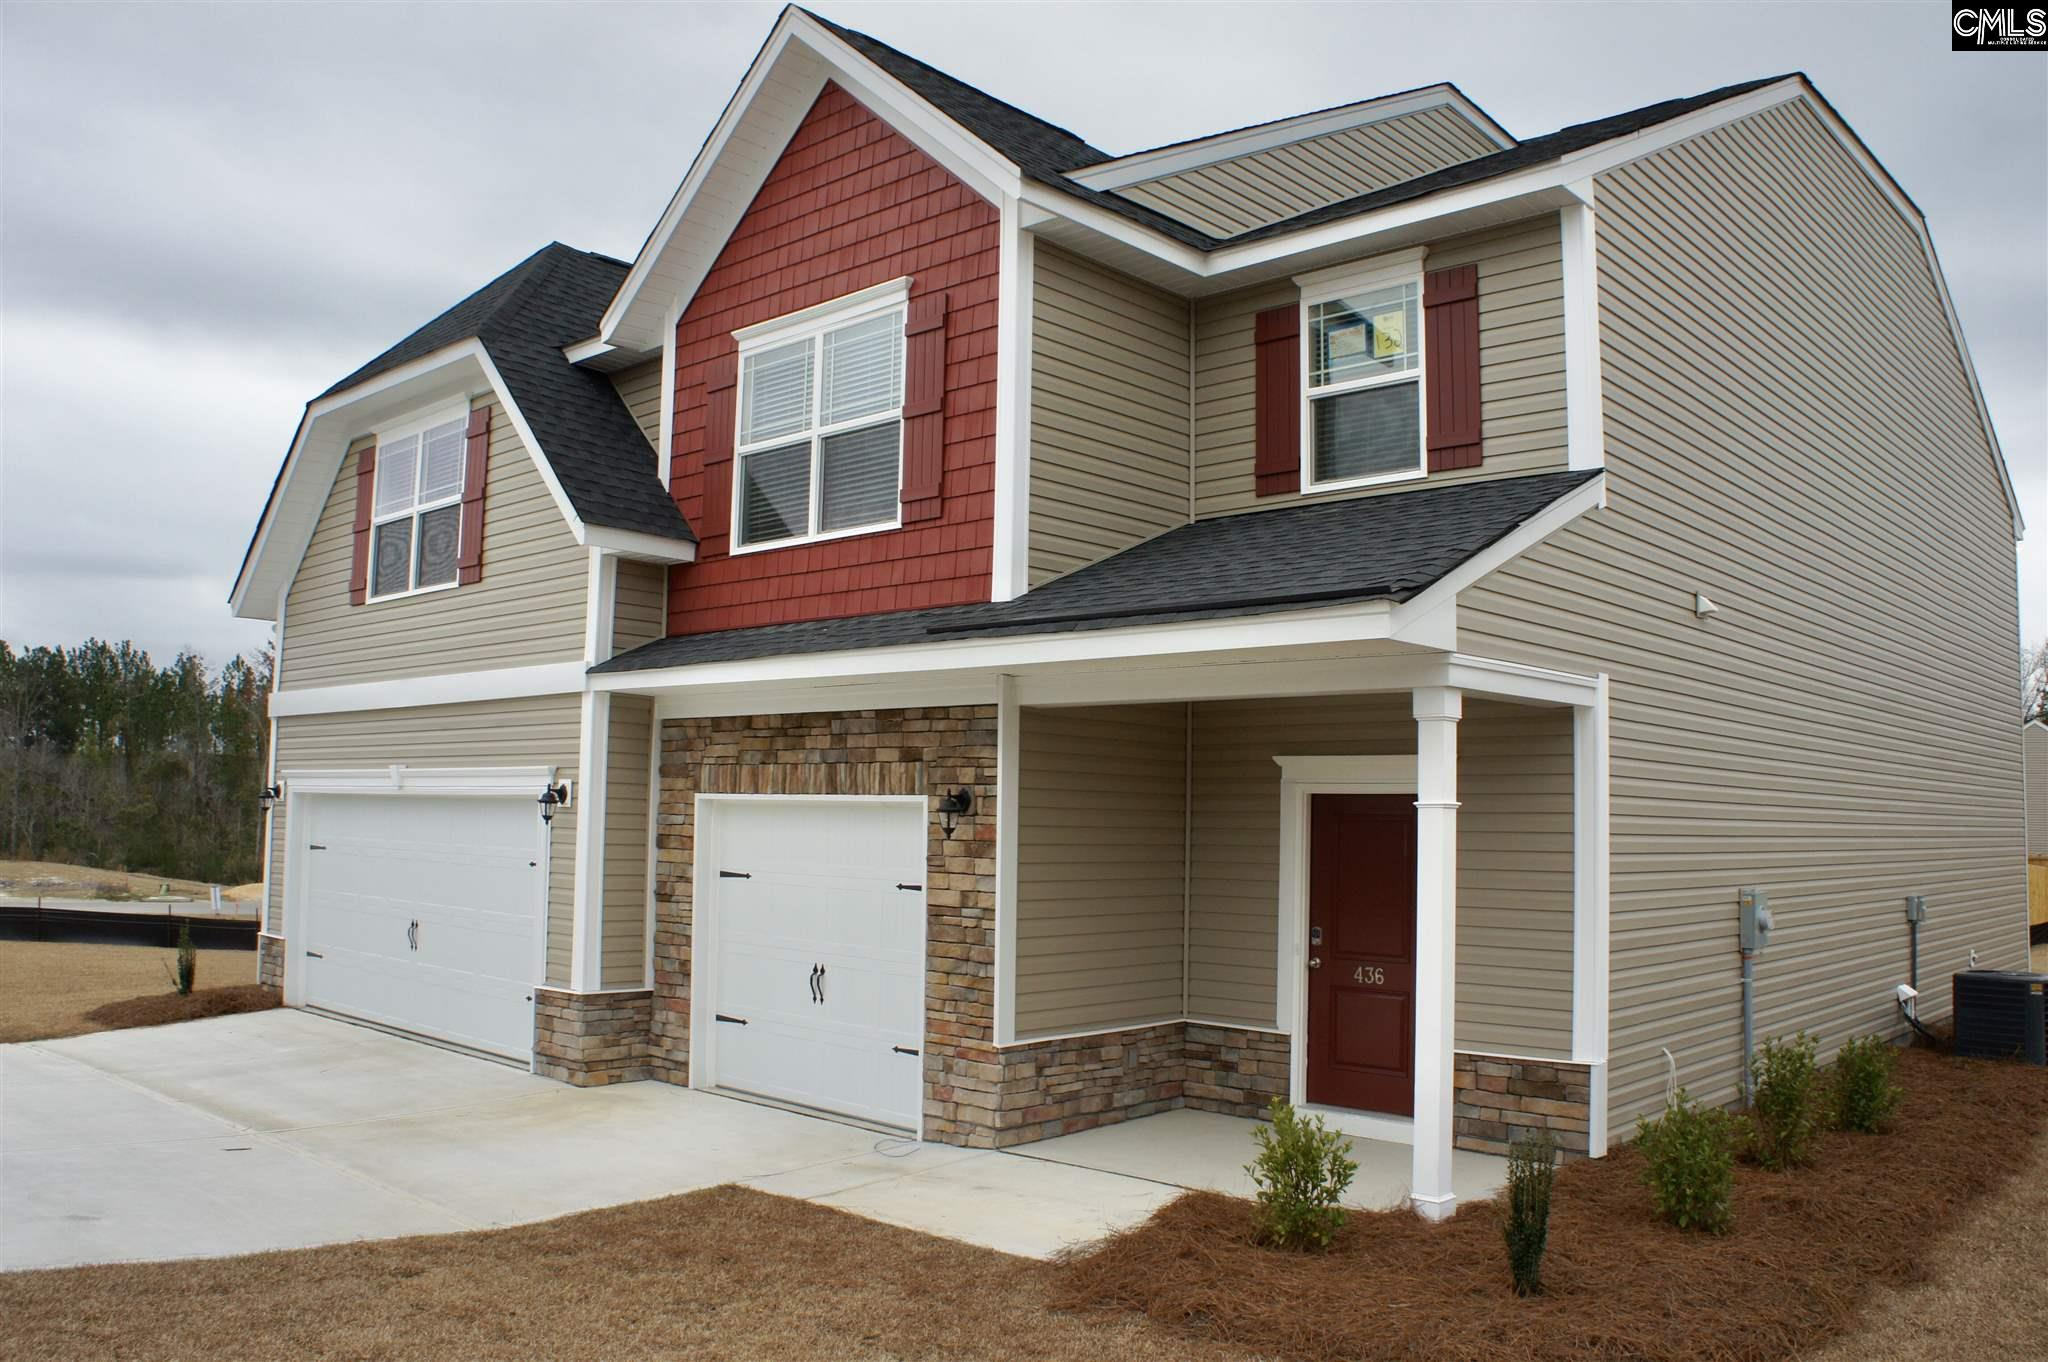 436 Magnolia Tree #132 Lexington, SC 29073